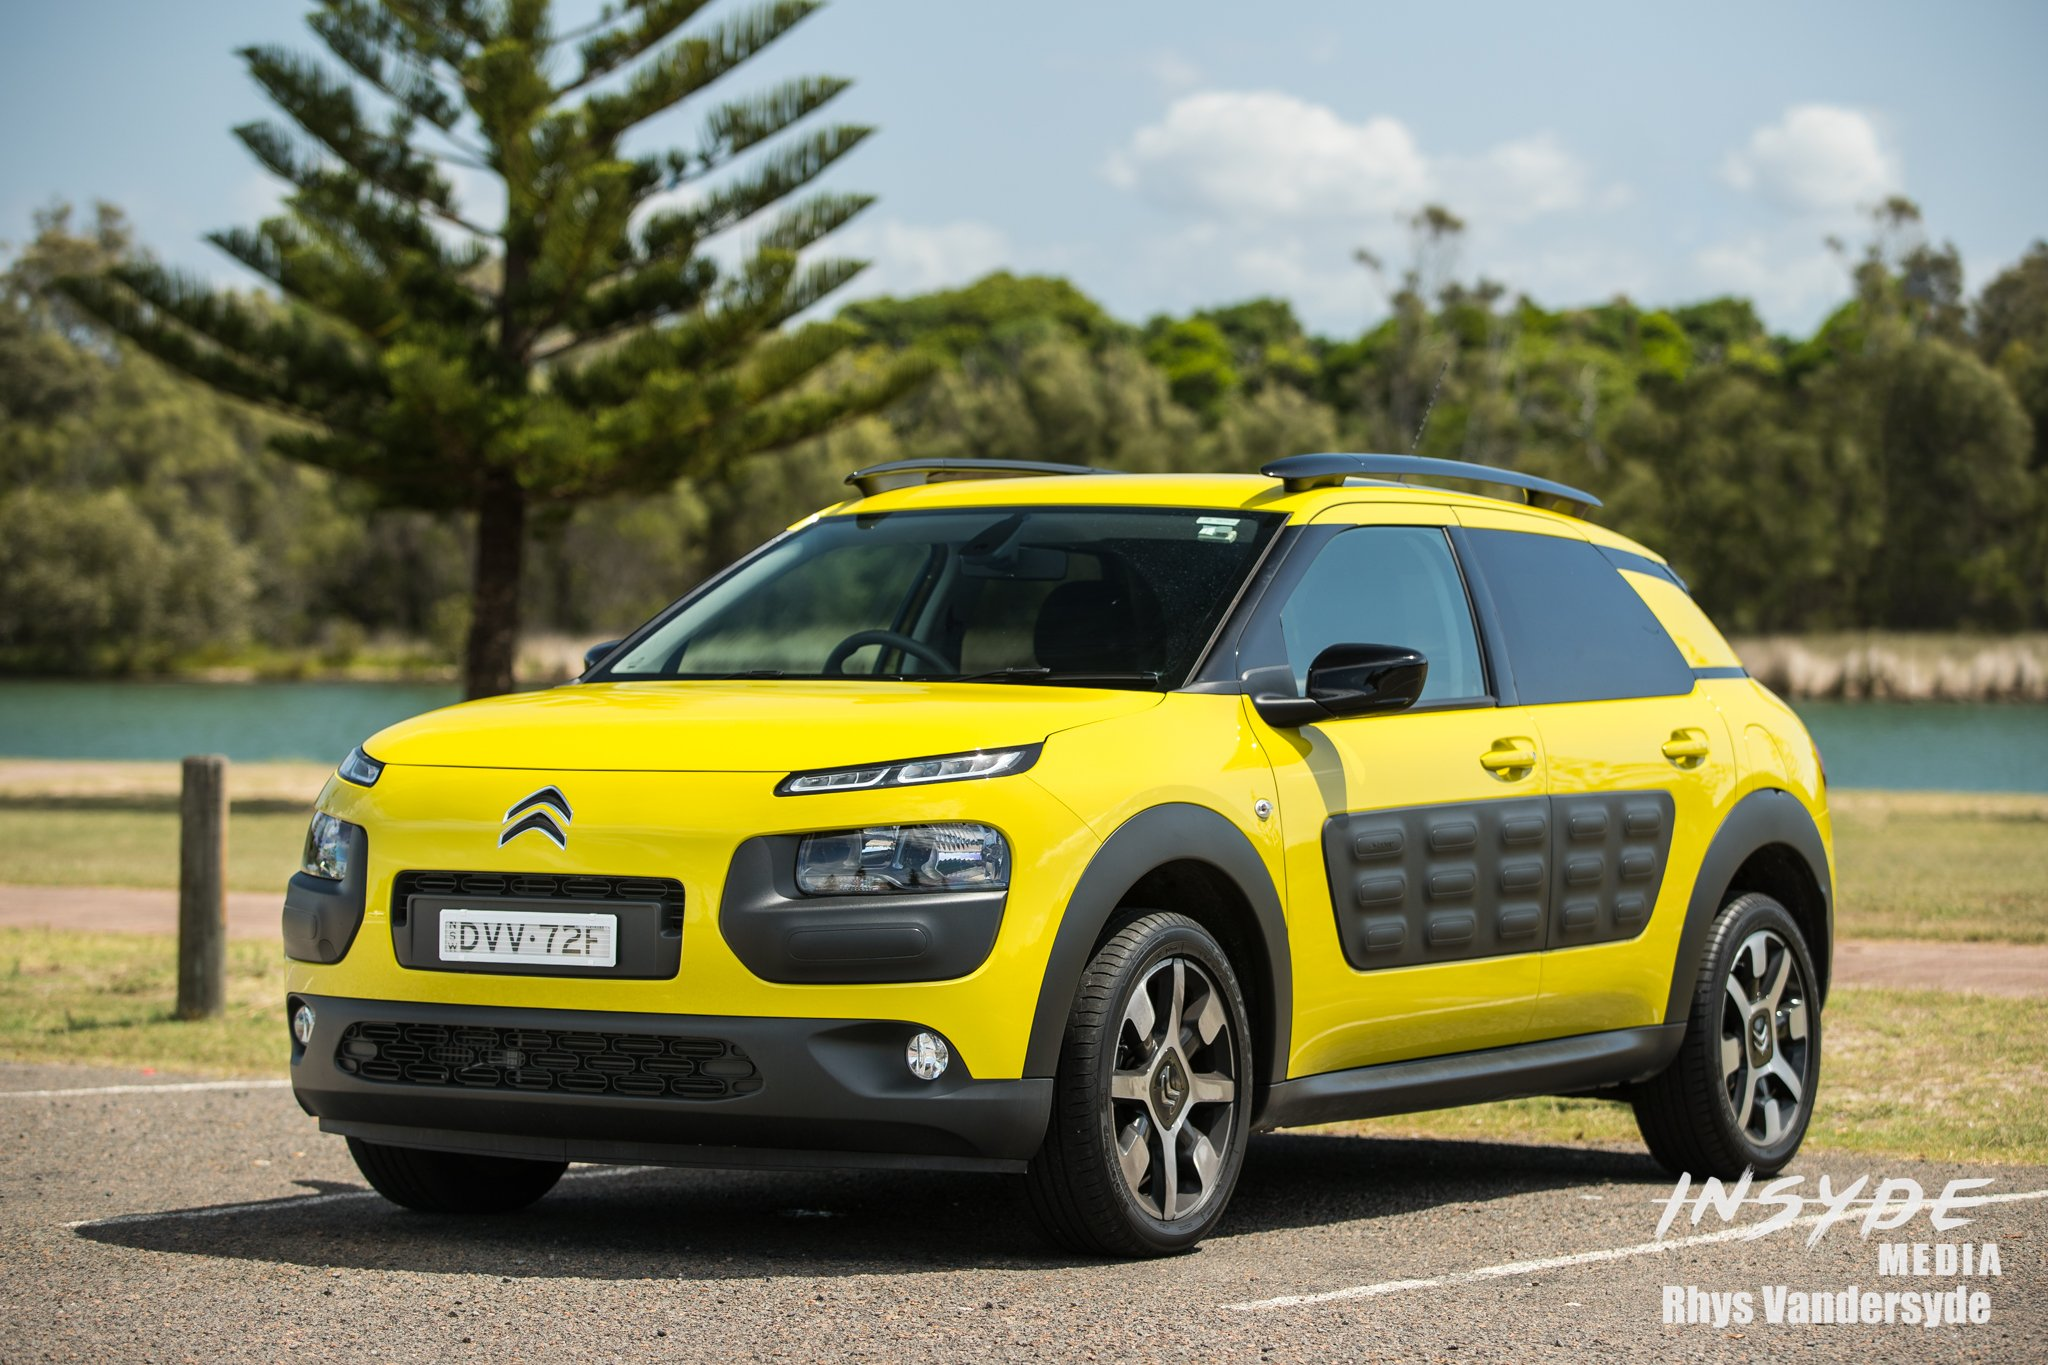 Photo Shoot: Citroen Cactus